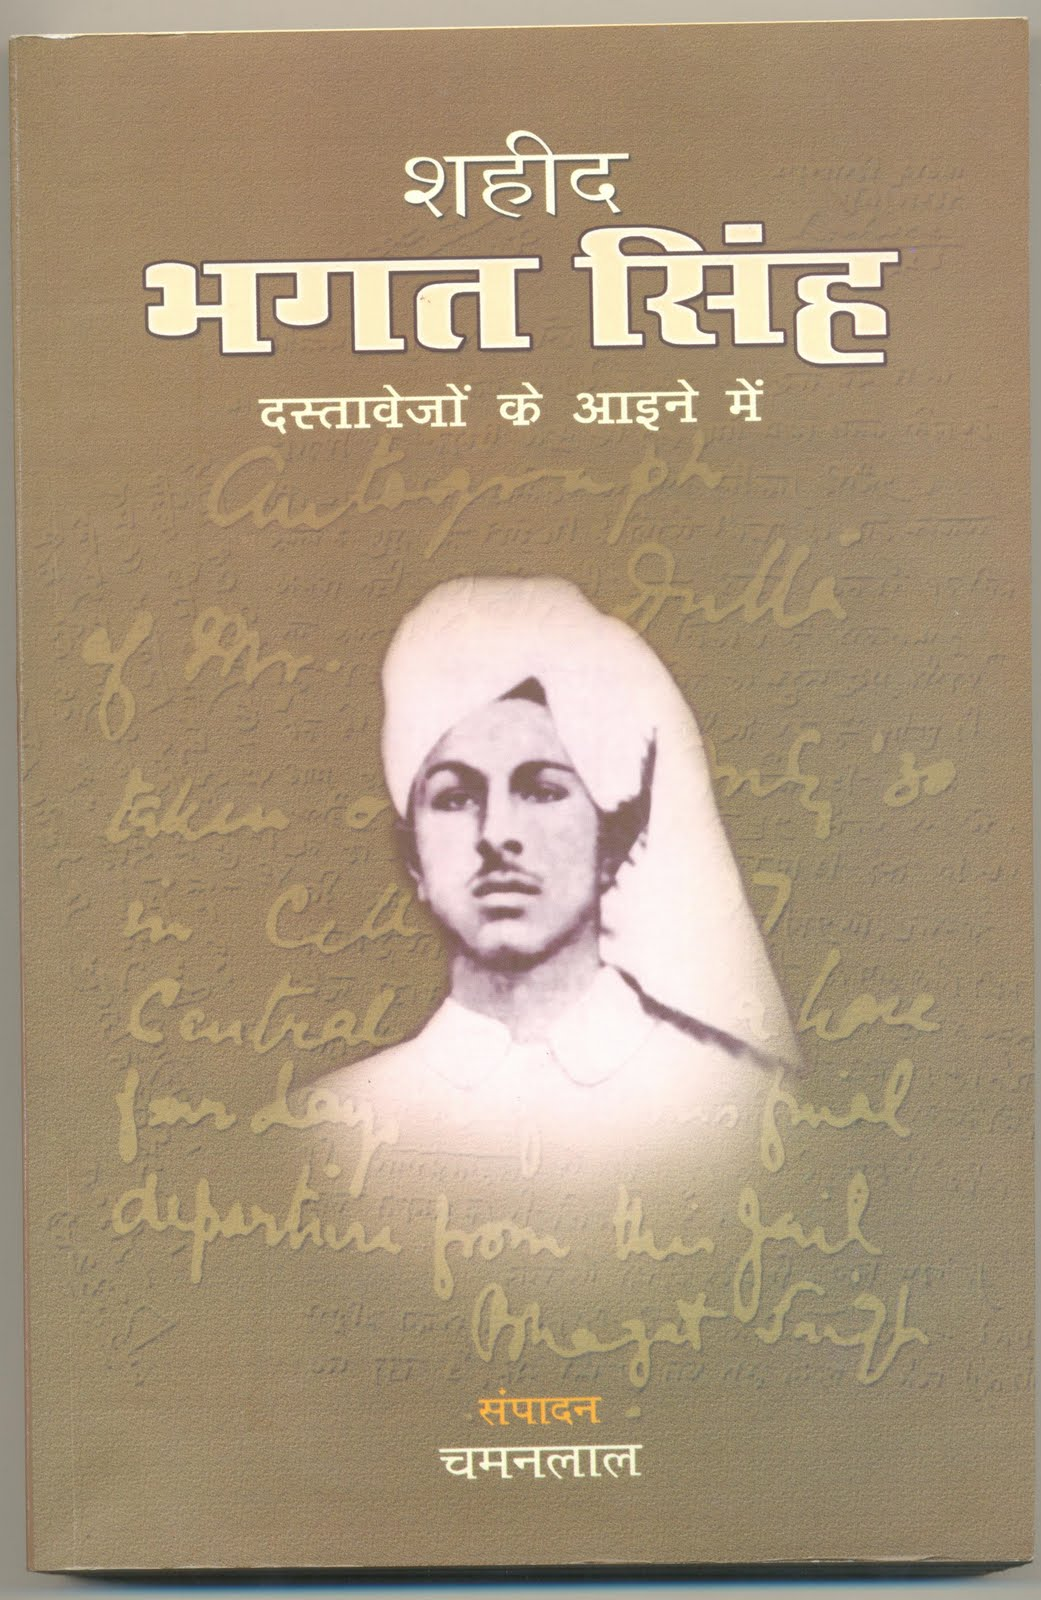 bhagat singh study chaman lal bhagat singh personality through bhagat singh personality through comprehensive documents